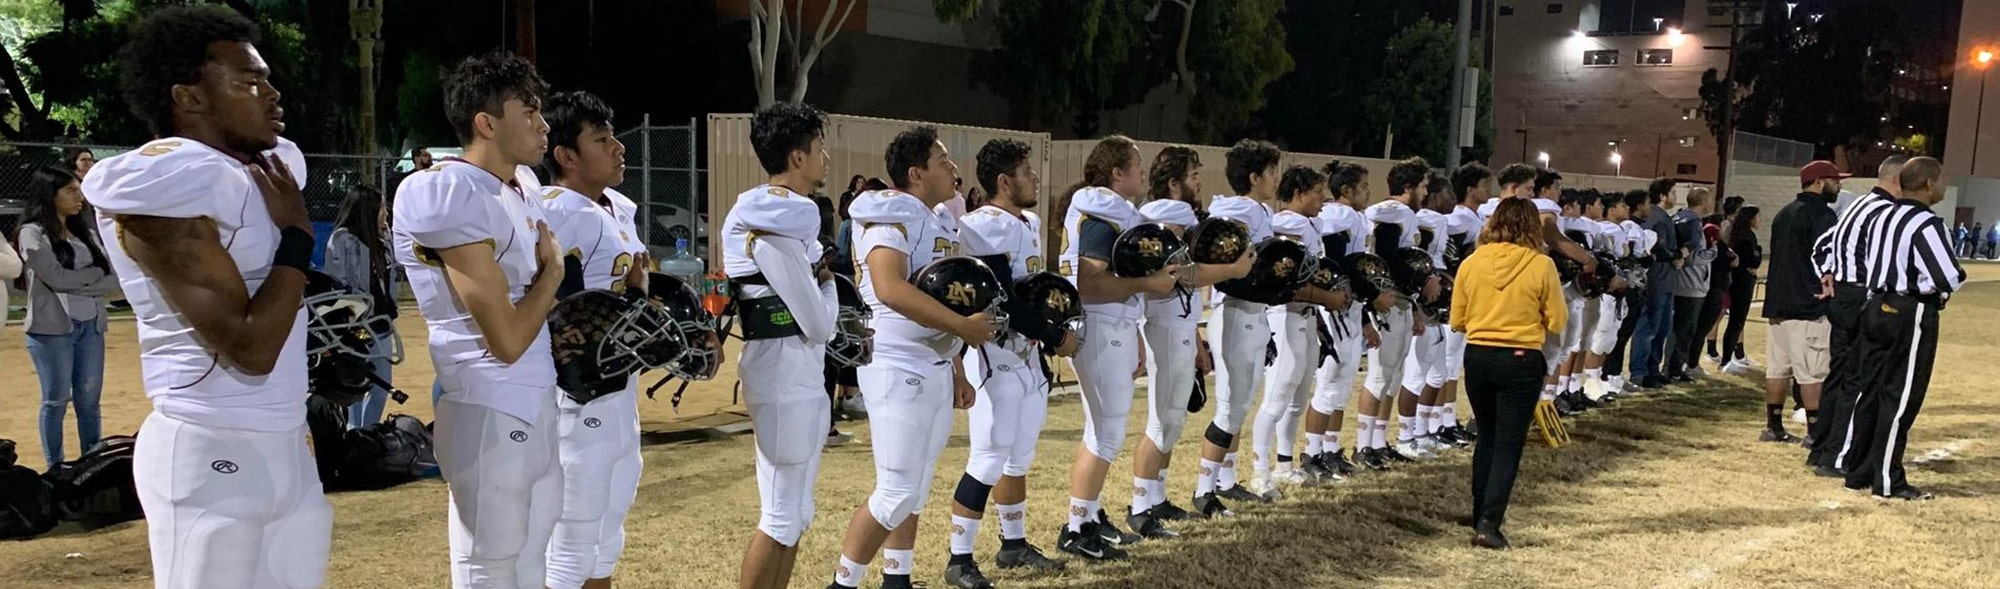 University Park football team with hands over hearts